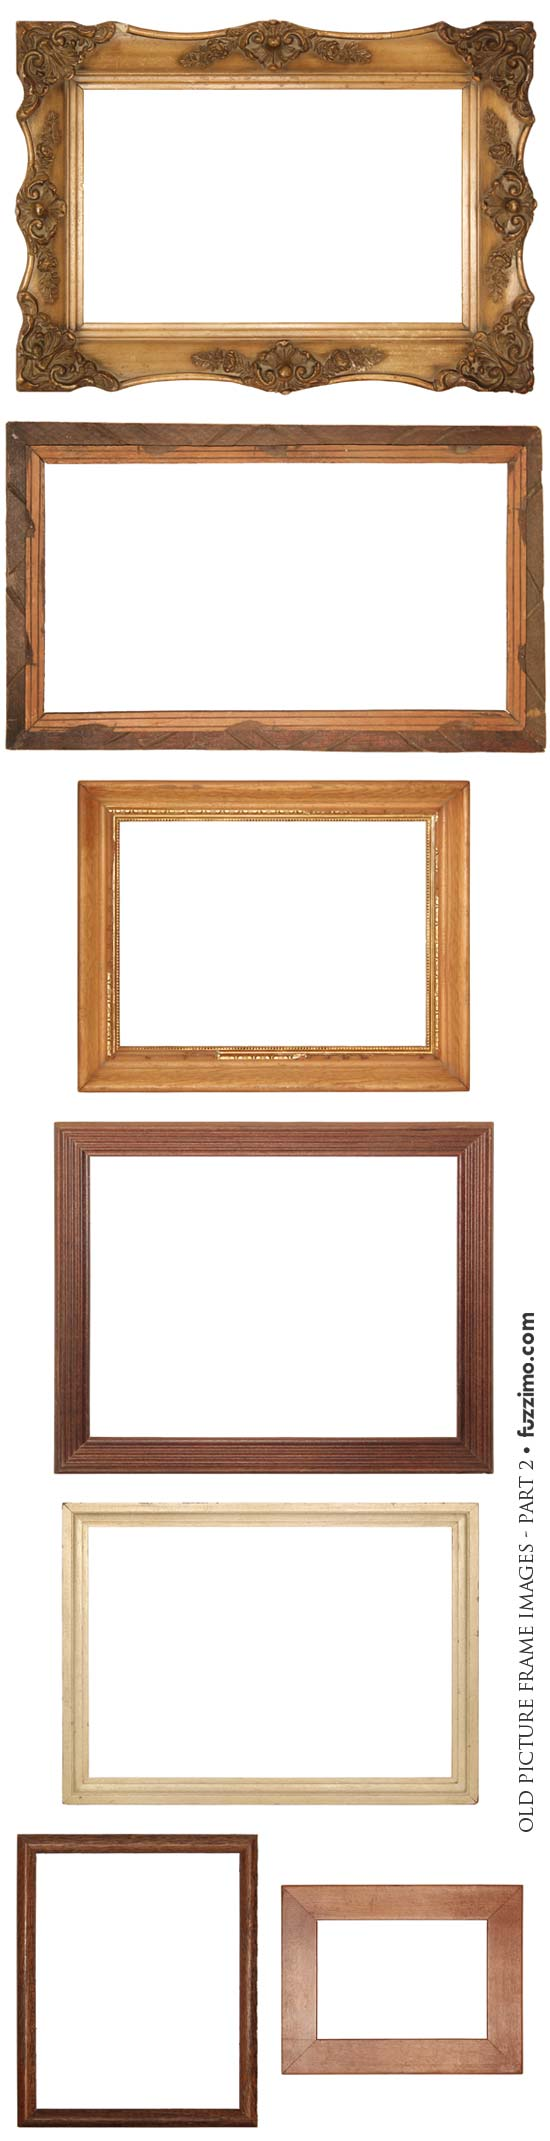 fzm-Antique-Old-Picture-Frame-Images-(2)-02a